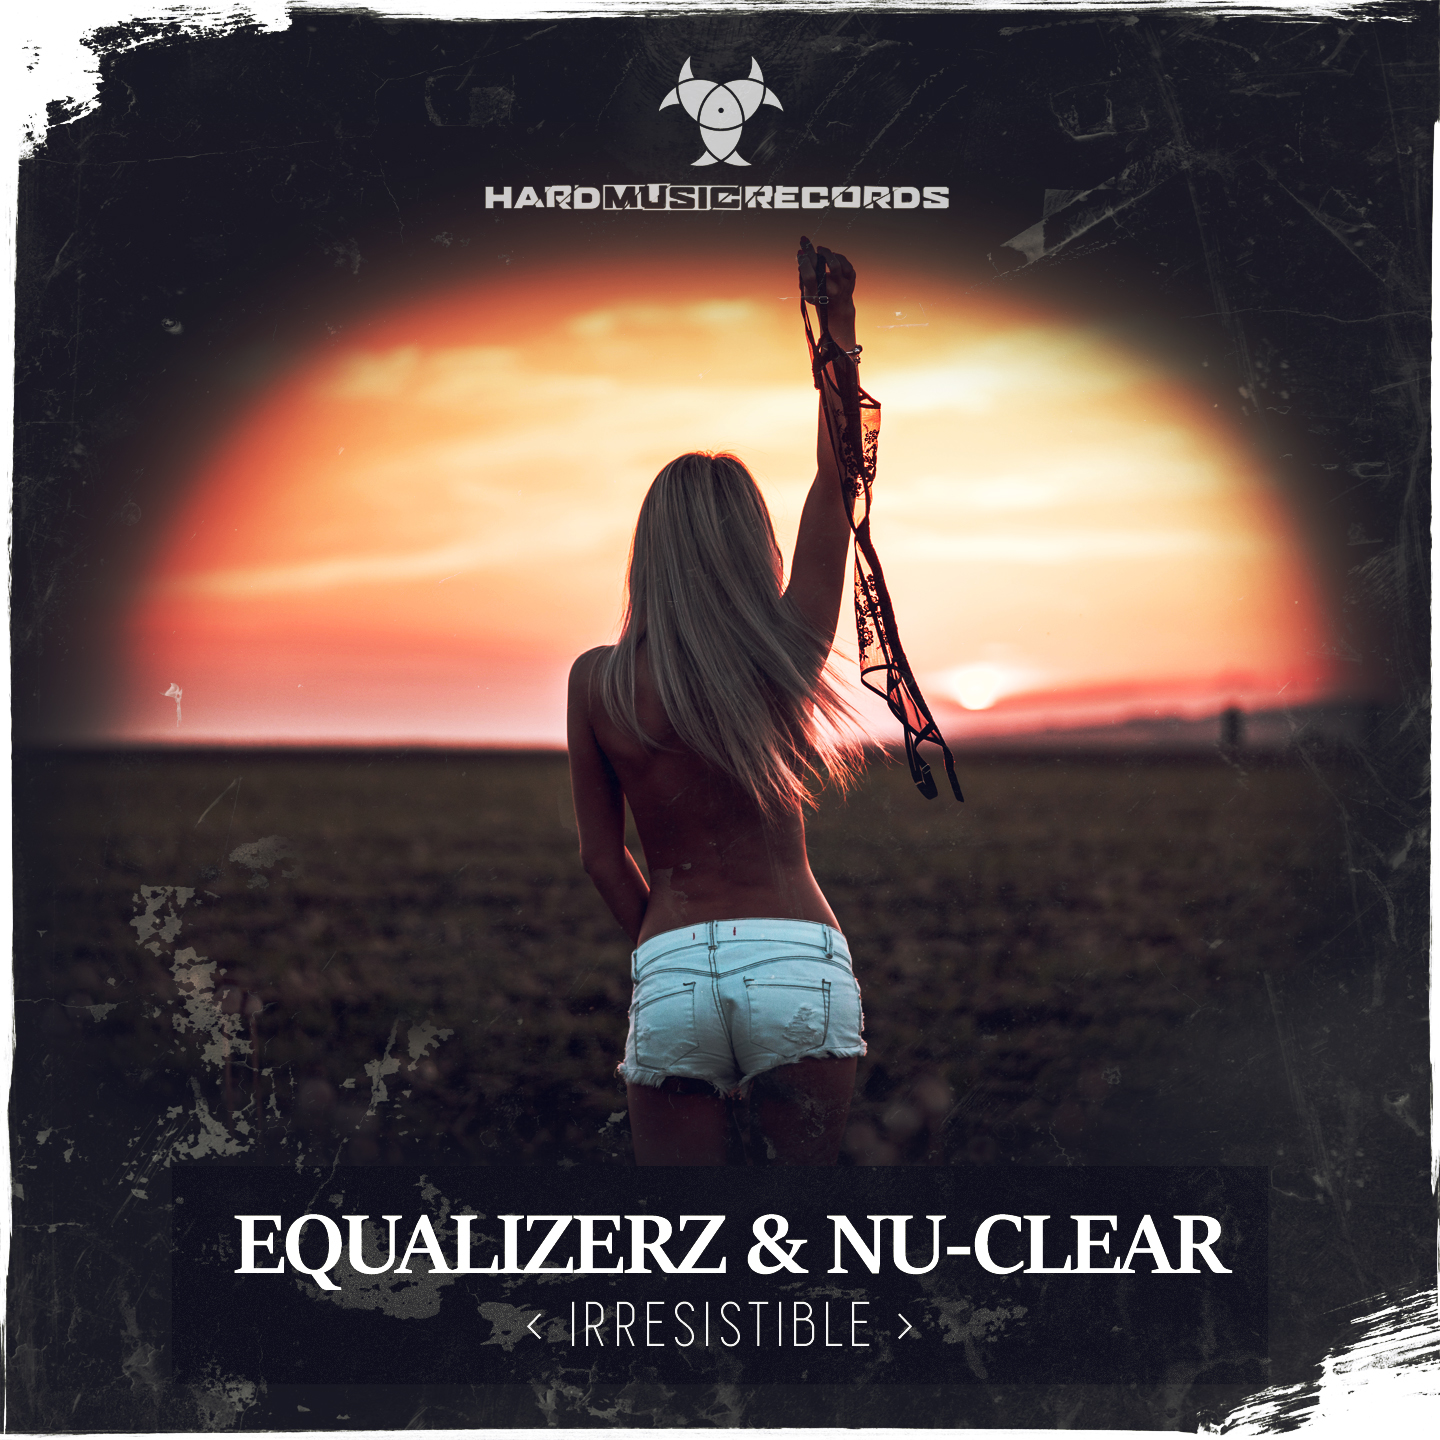 Irresistible by Equalizerz & Nu-Clear